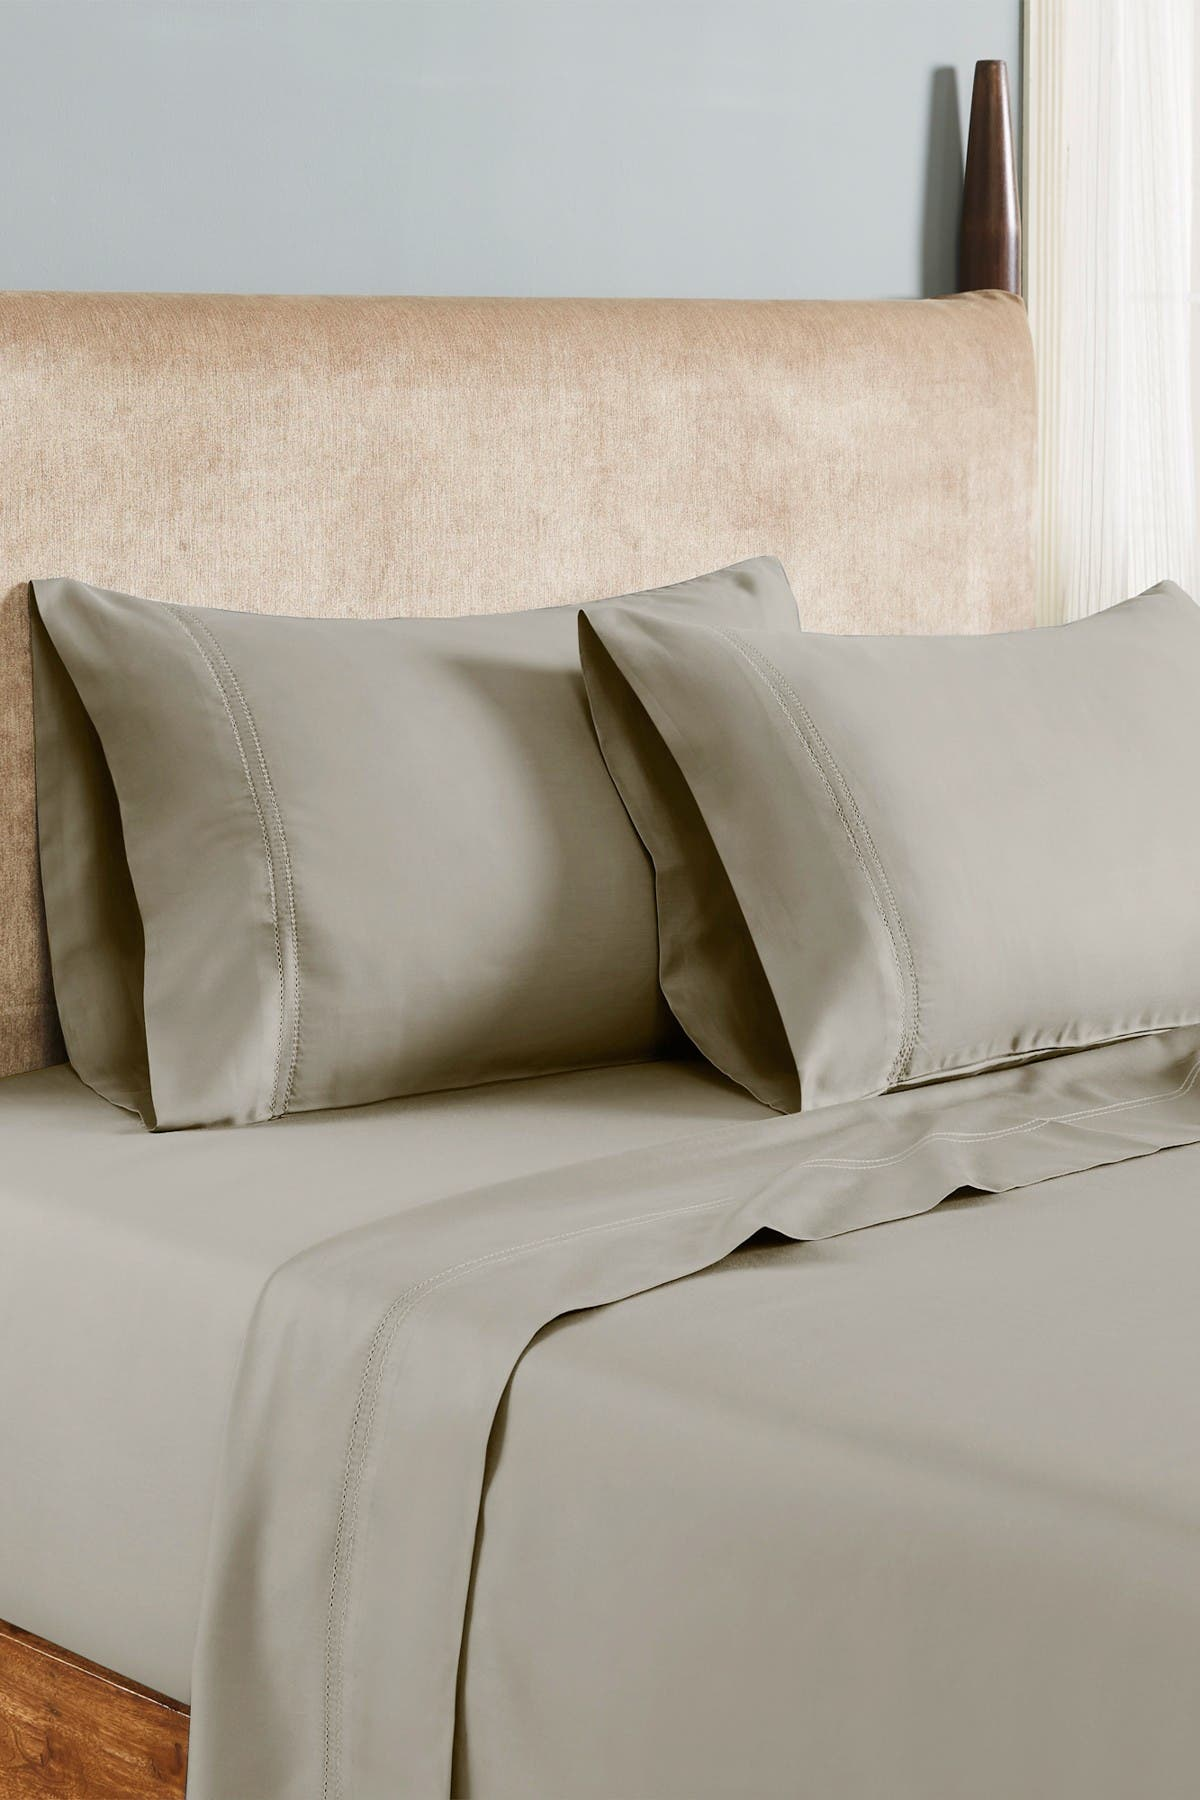 Image of Modern Threads 1000 Thread Count Tri-Blend 6-Piece Sheet Set With Double Hole Hem - Coconut - King